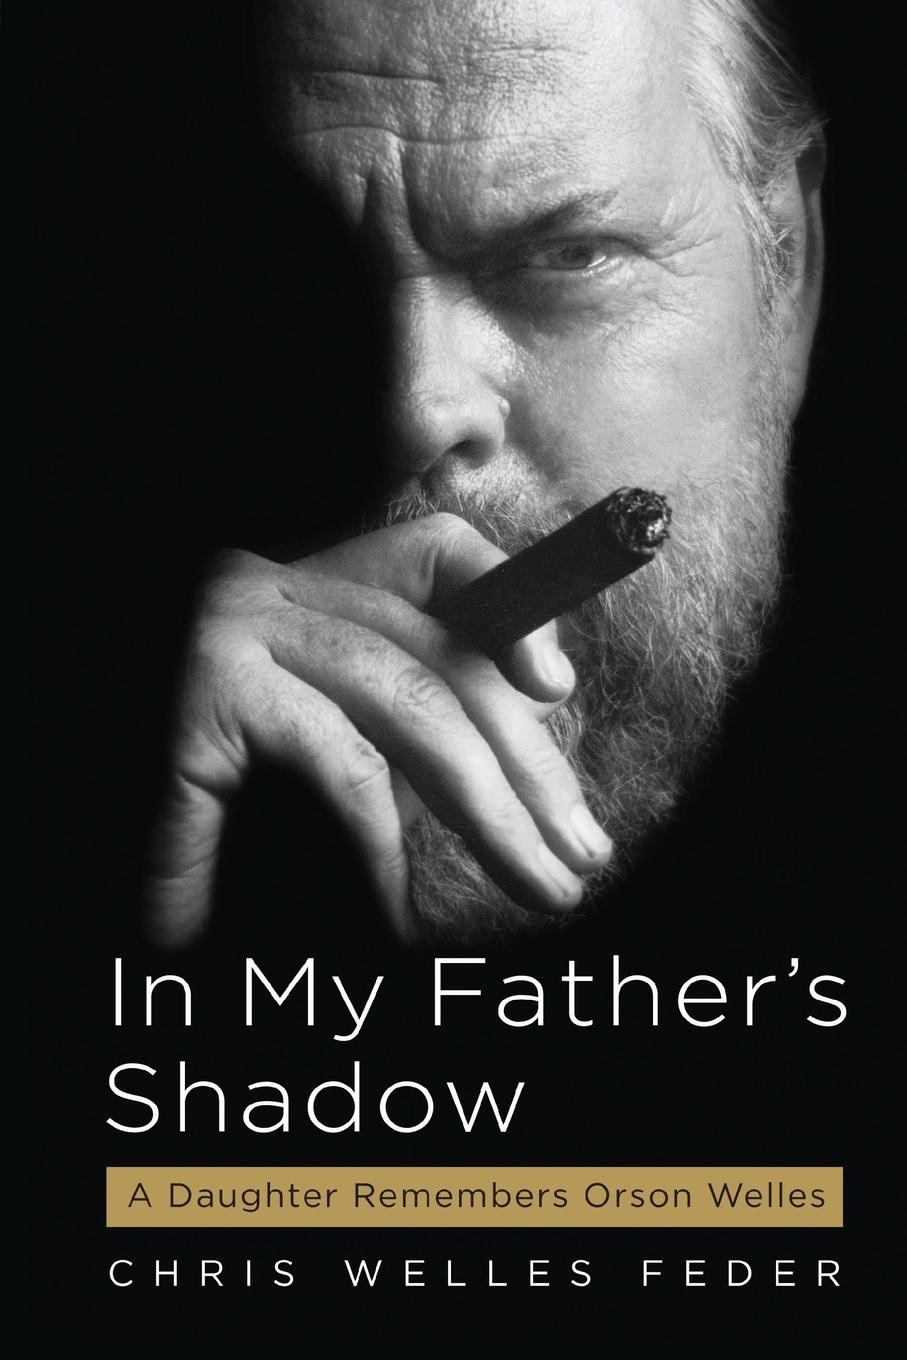 Chris Welles Feder In My Father.s Shadow. A Daughter Remembers Orson Welles